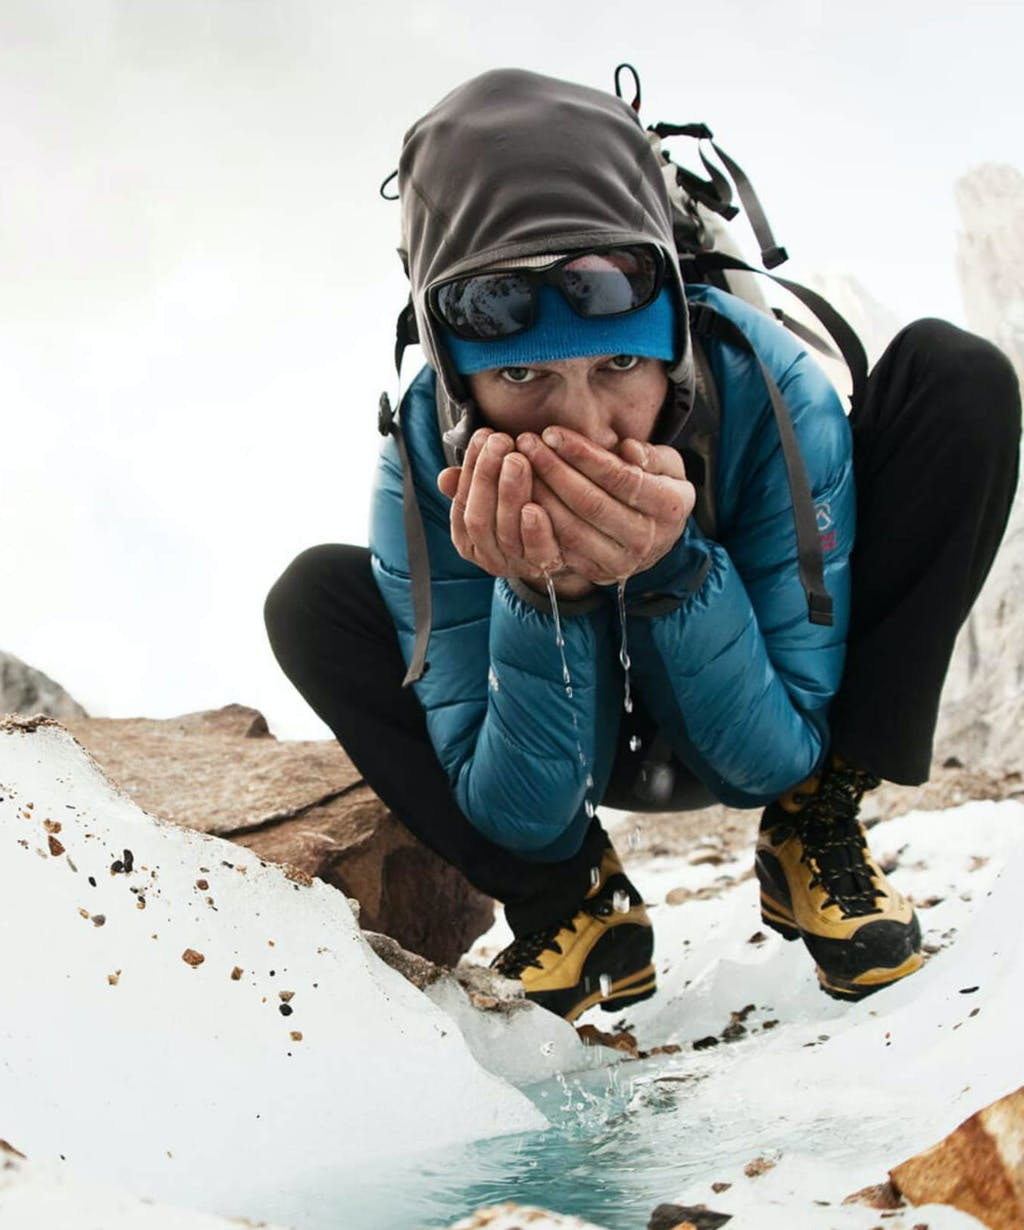 Renan Ozturk sipping water from glacial runoff